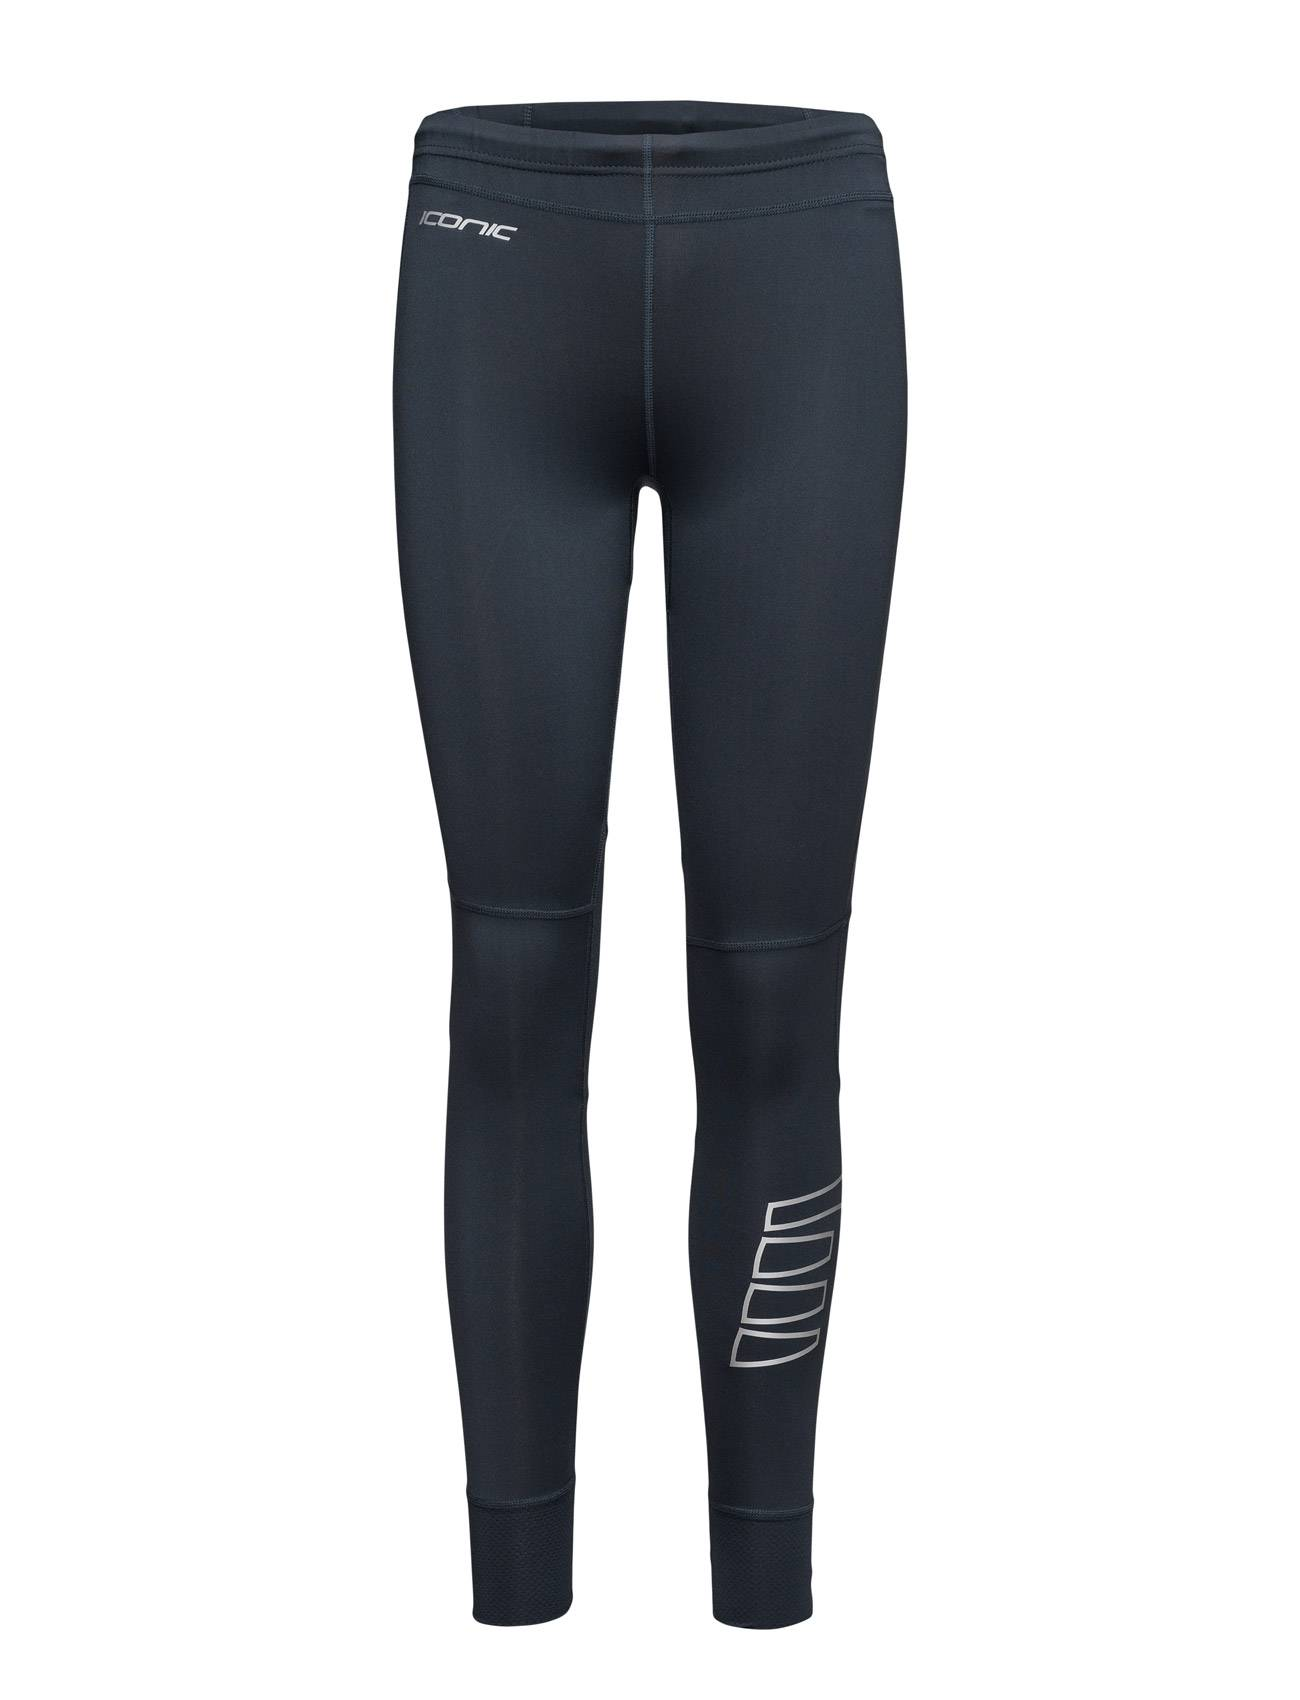 Newline Iconic Power Tights